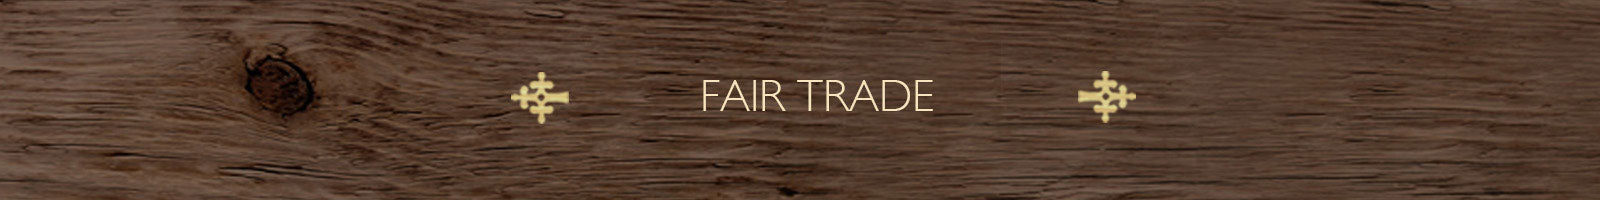 Fair Trade - The India Craft House